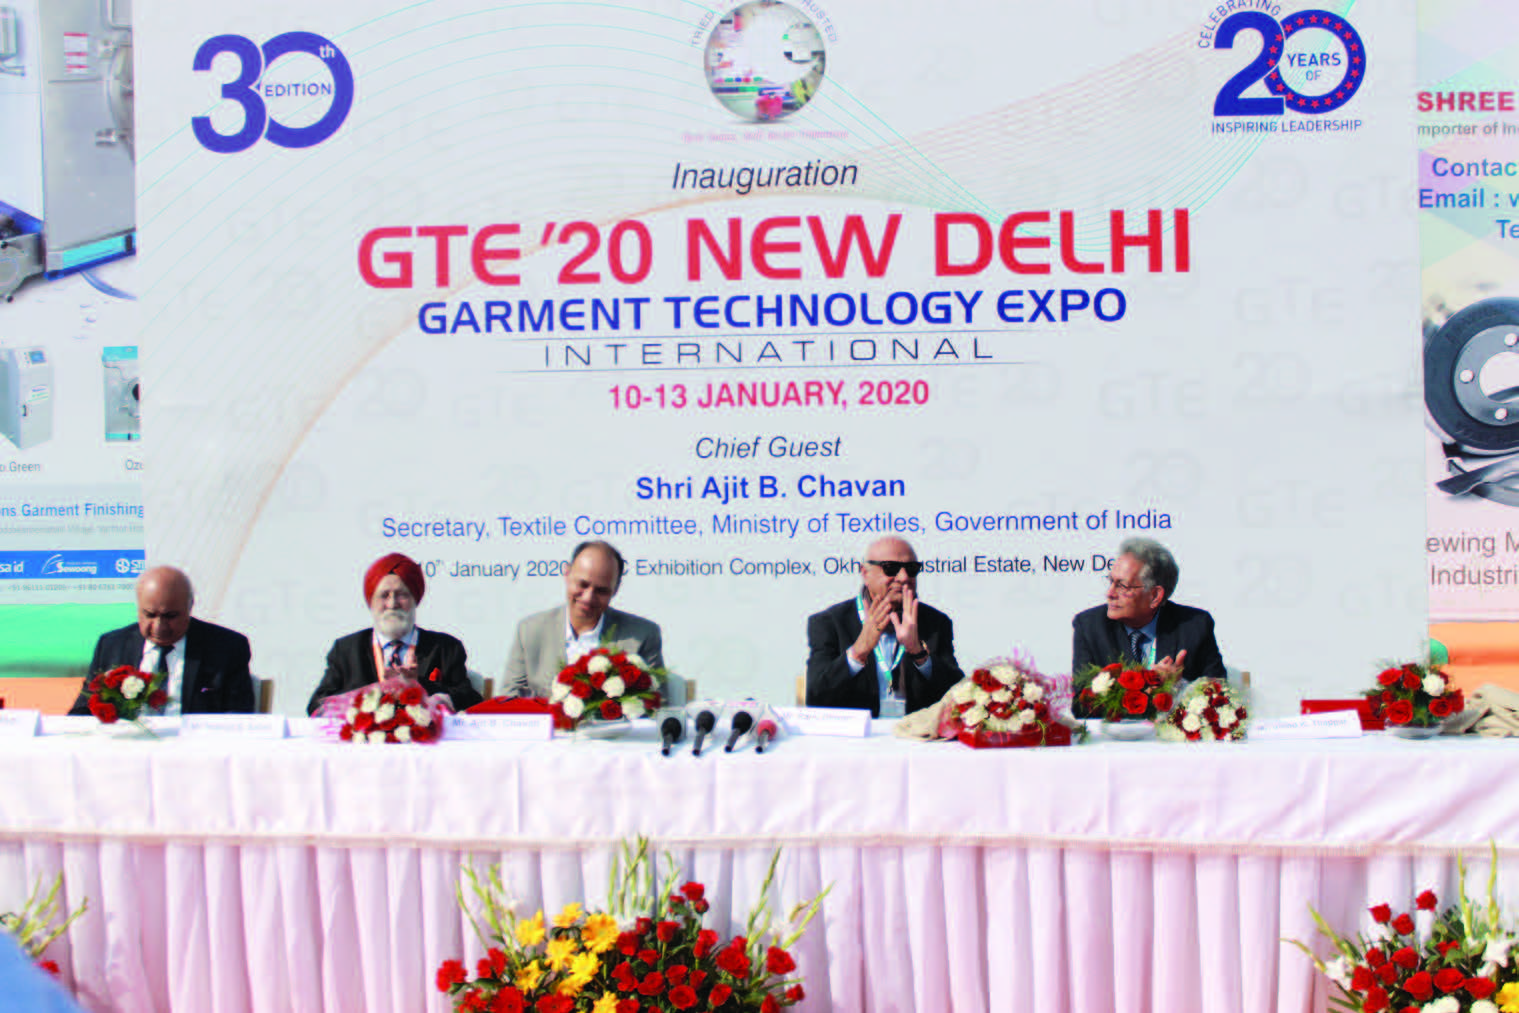 Garment Technology Expo 2020